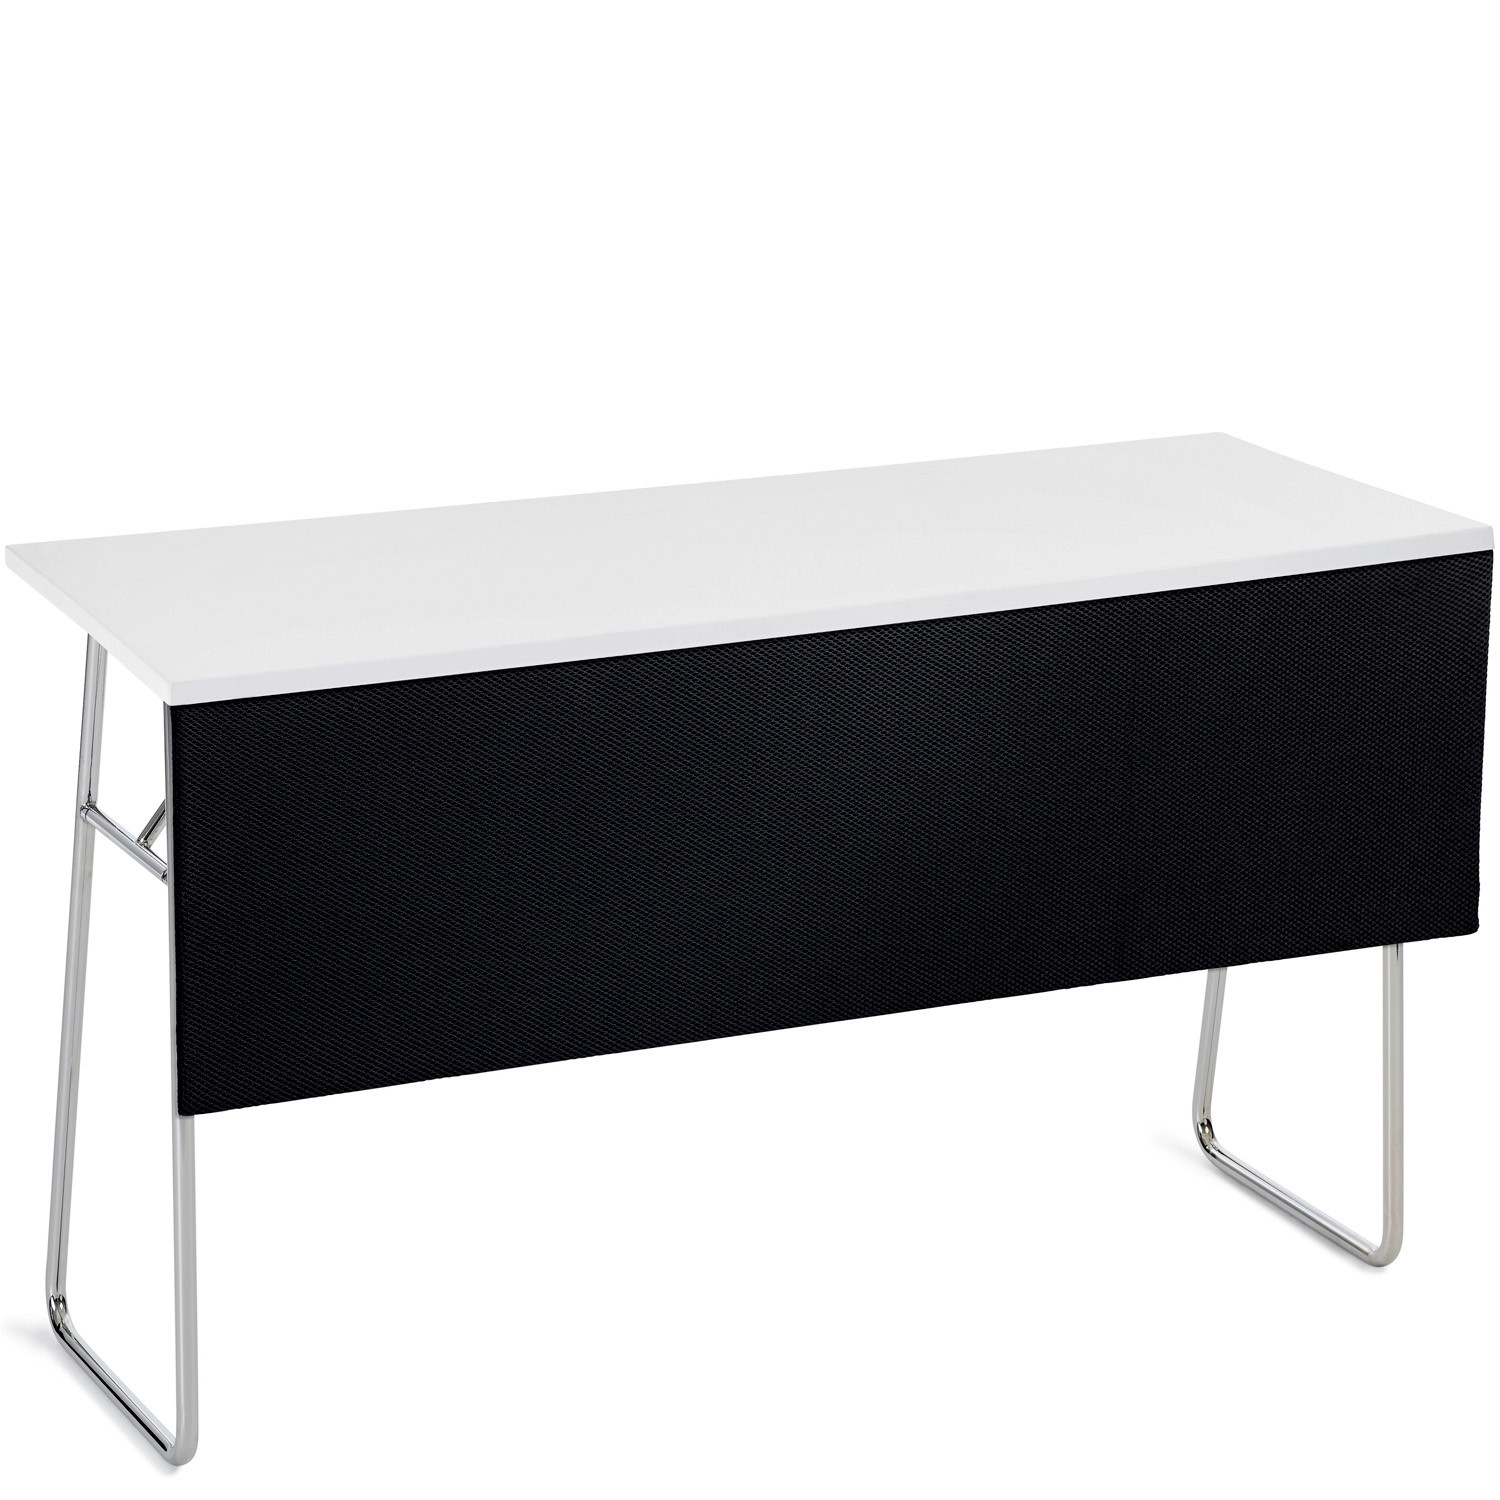 Lite Table with front panel